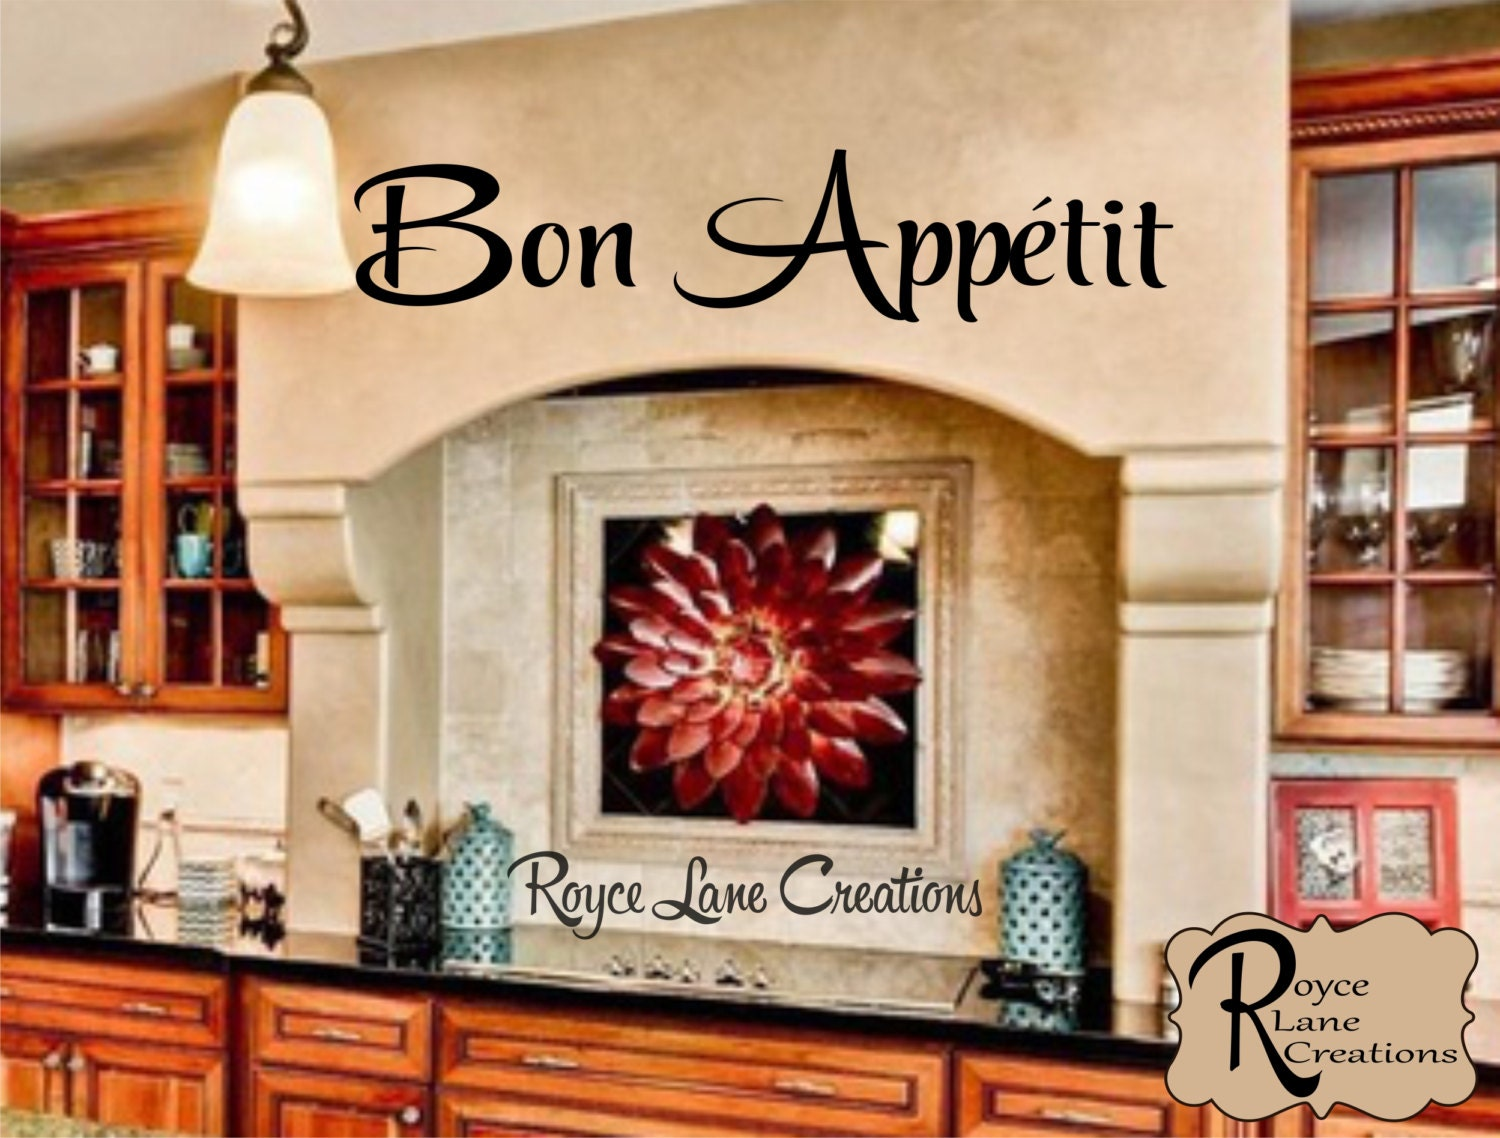 Bon Appetit Kitchen Wall Decal Kitchen Wall Decal   Bon Appetit Decal   Kitchen Decal Kitchen Art  Kitchen Decor